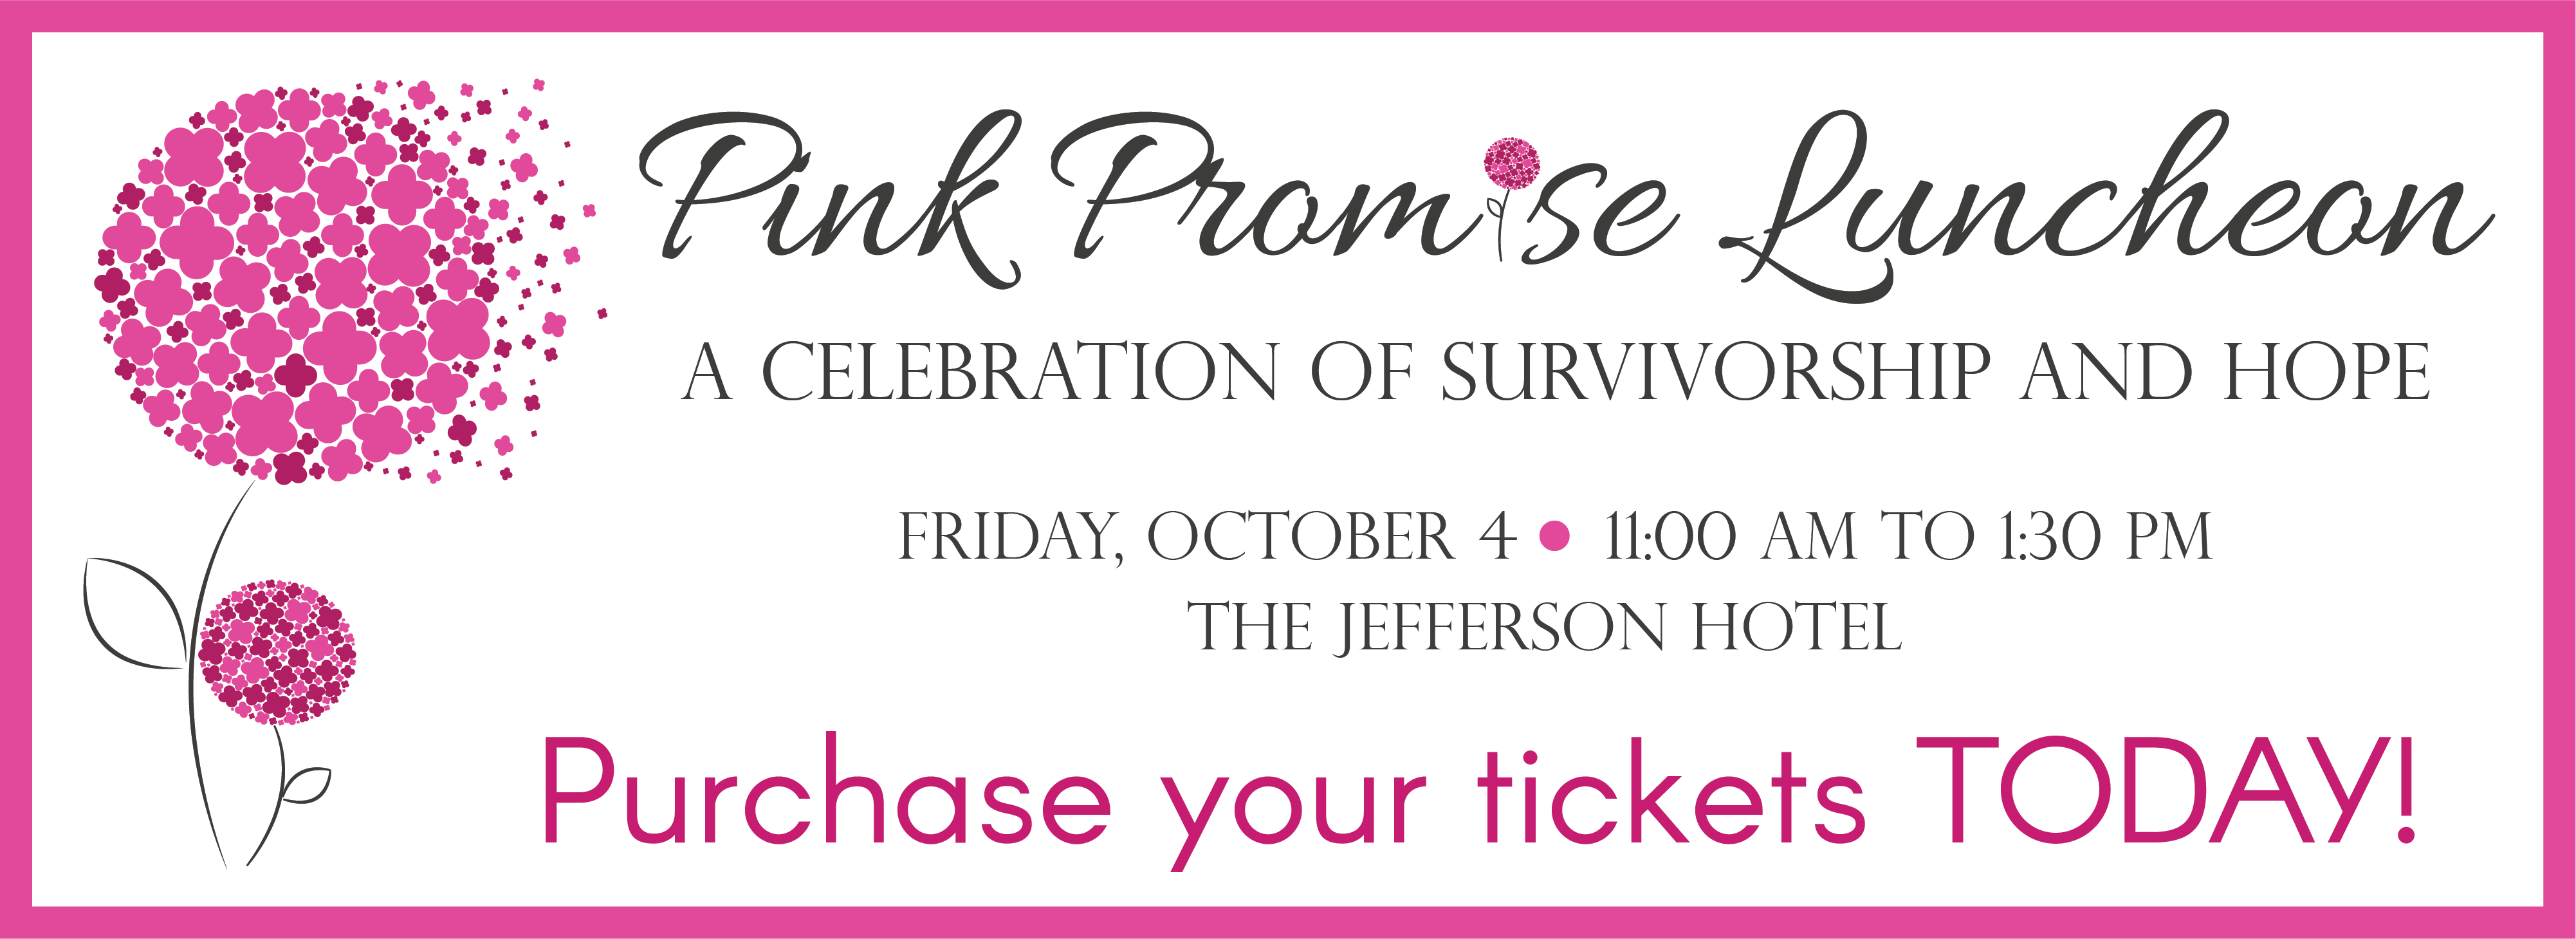 2019 Pink Promise Luncheon banner